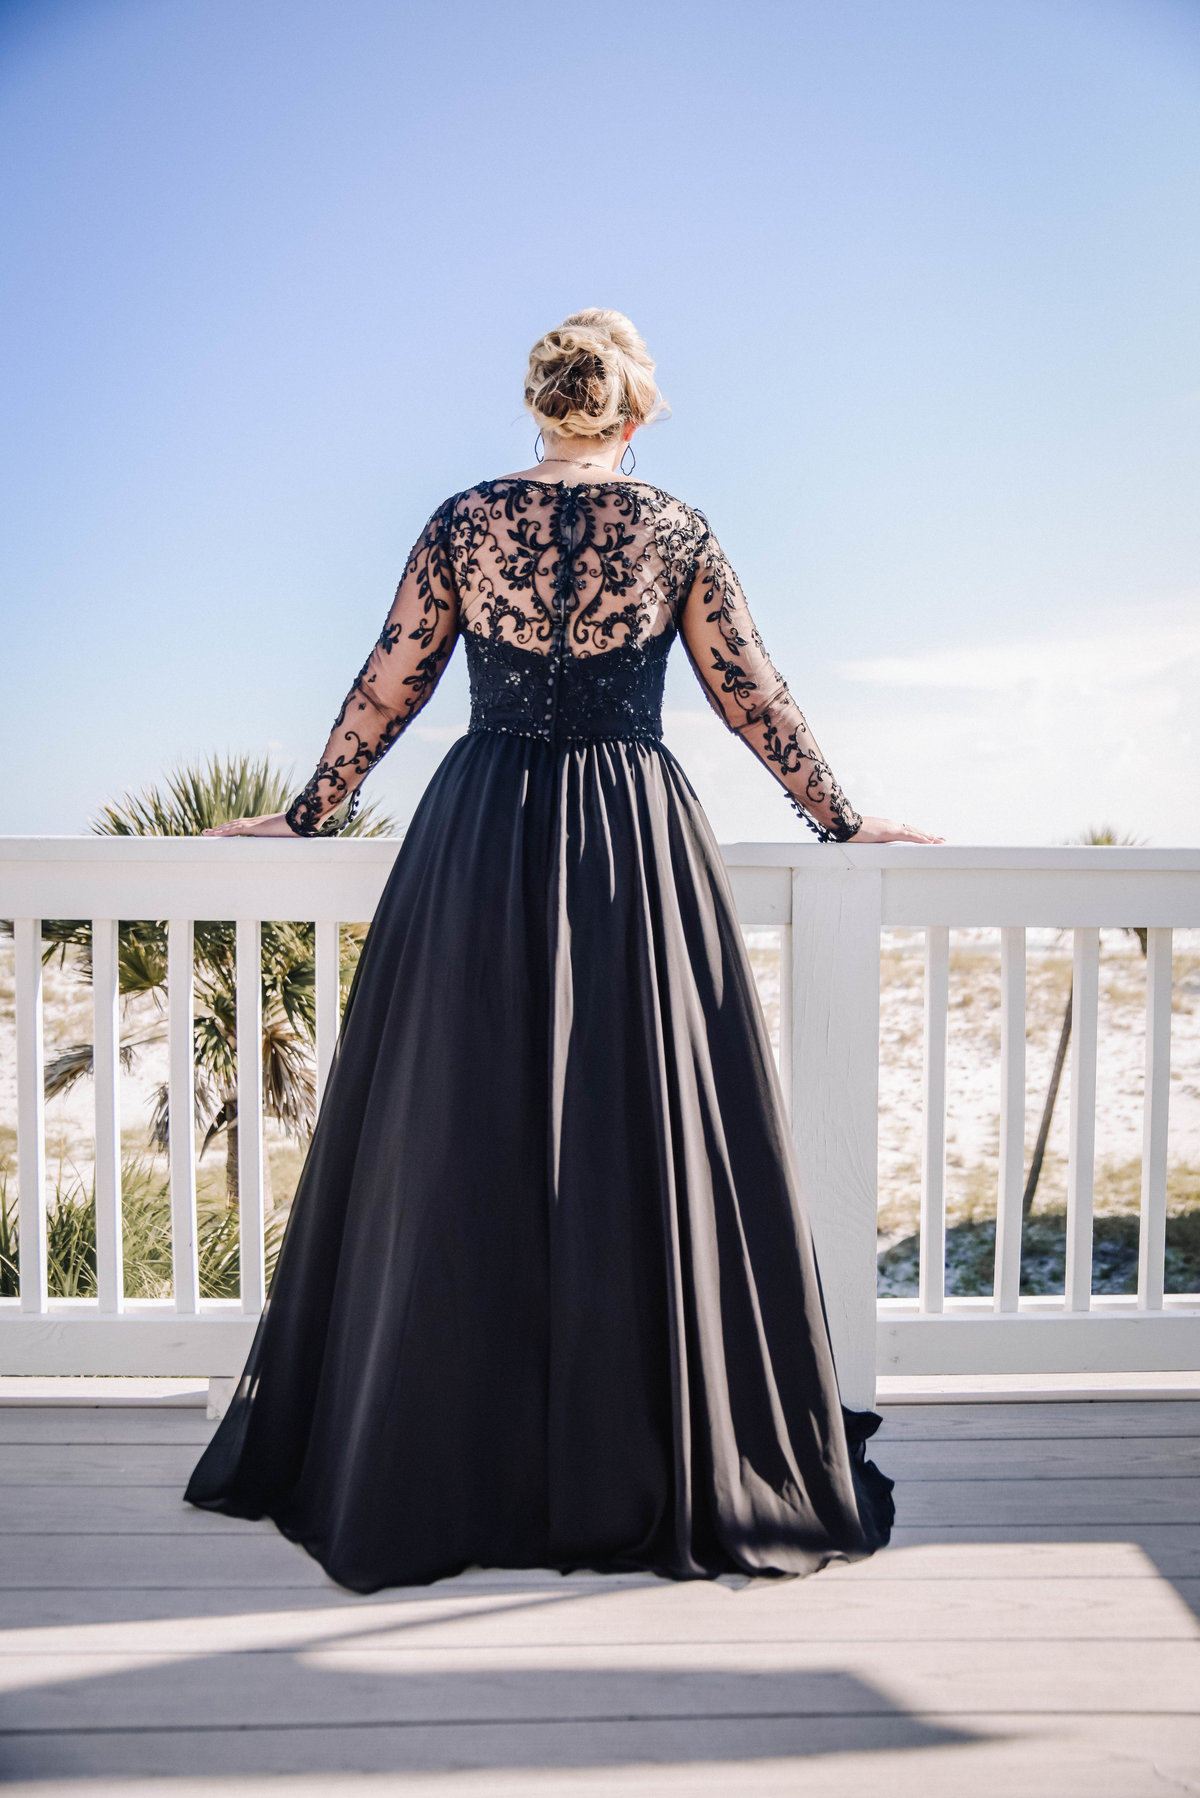 Bride in a black wedding dress looking  out on Pensacola beach.